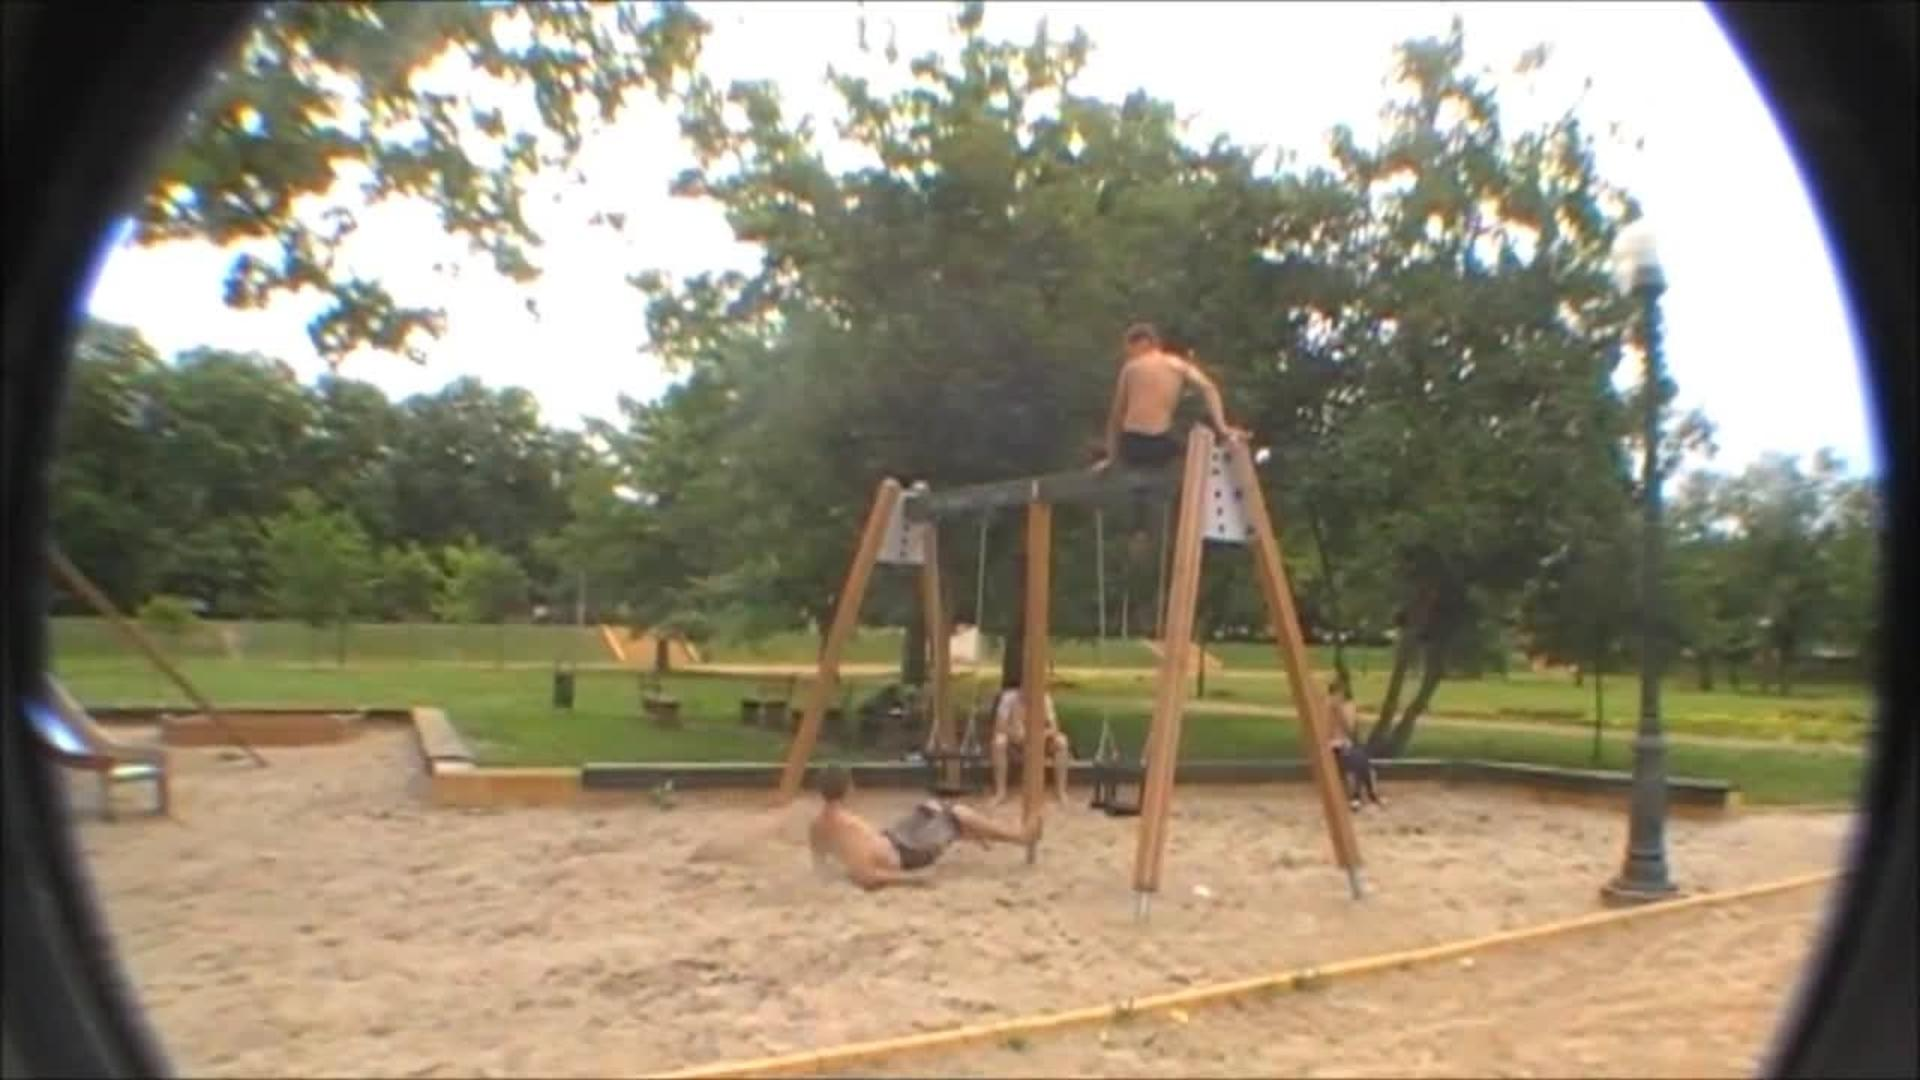 parkour kid attempts a running gainer backflip jukin media